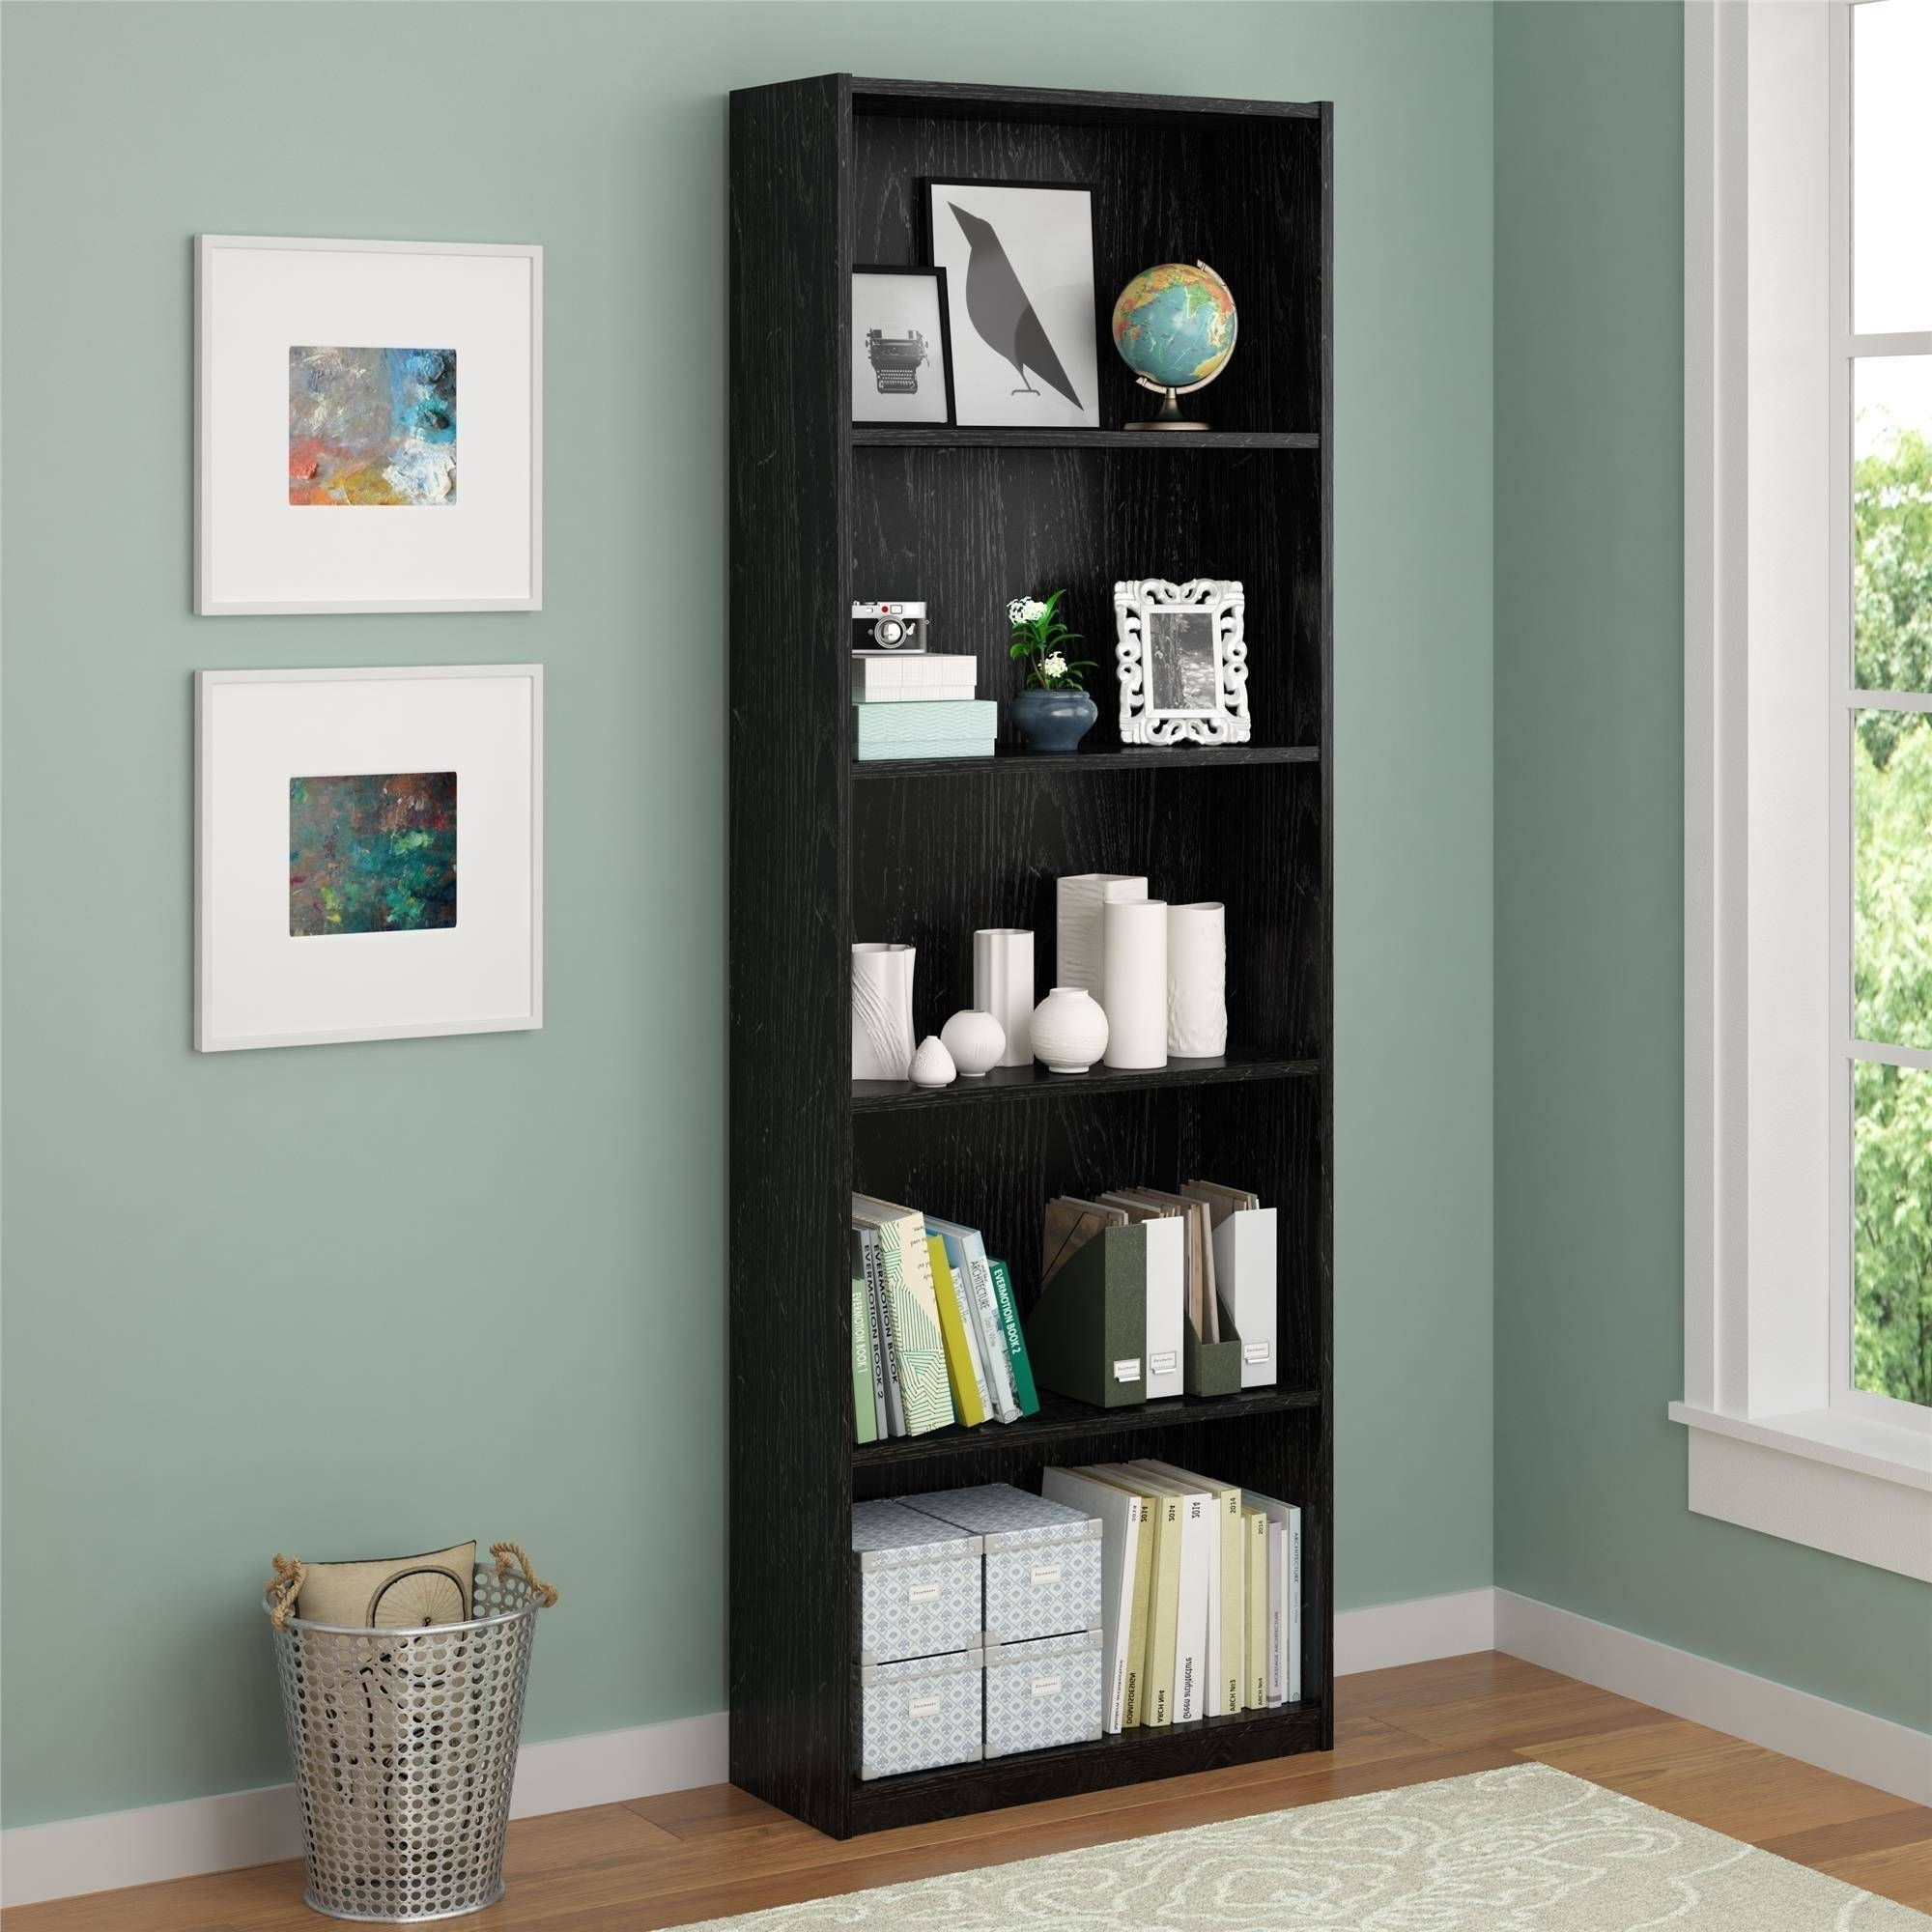 Ballard Designs Bookcases For Newest Top Narrow Bookshelf And Bookcase Collection Wide Bookcases Inch (View 15 of 15)